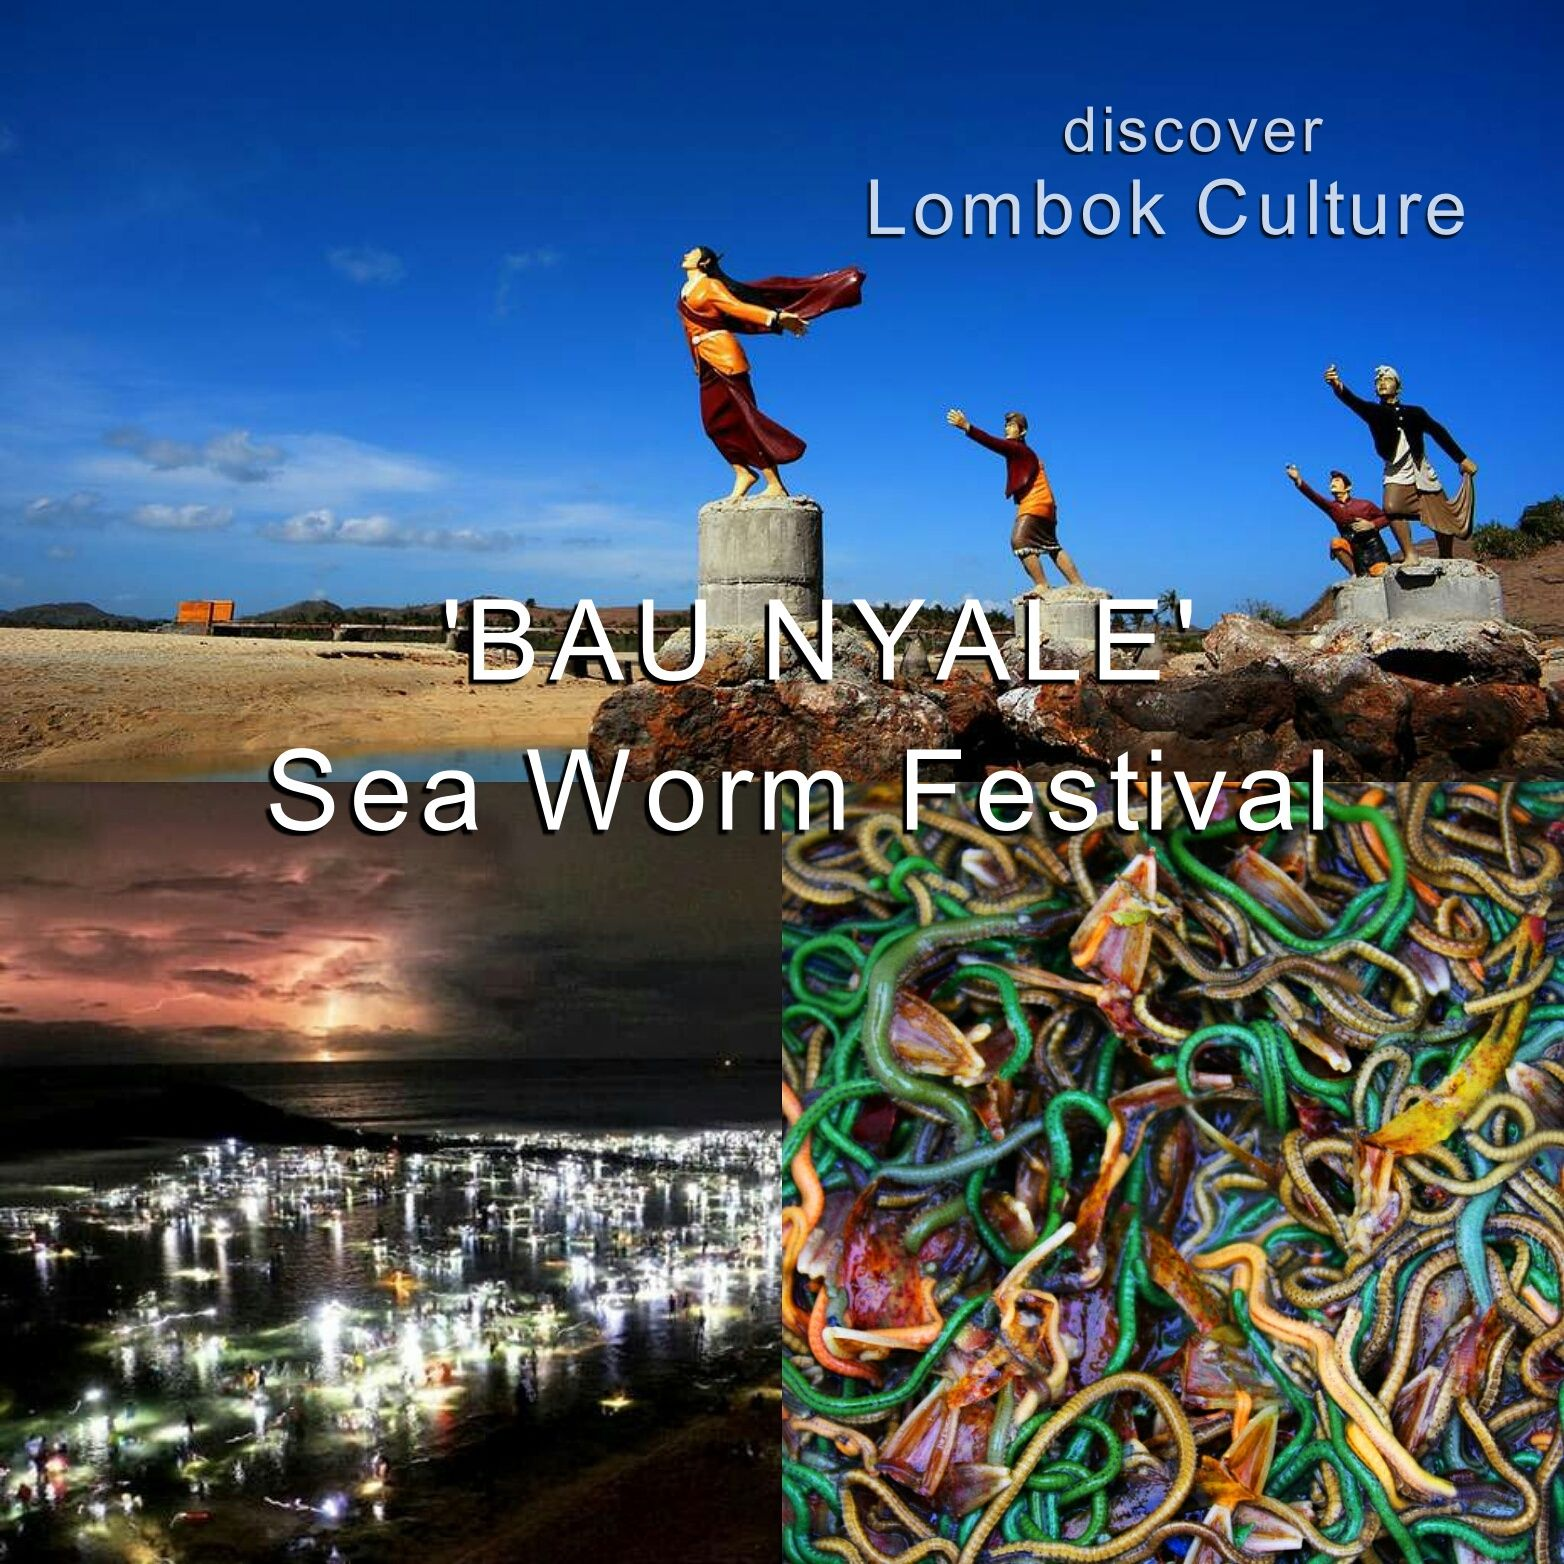 Bau Nyale' sea worm festival in Lombok is an annual event